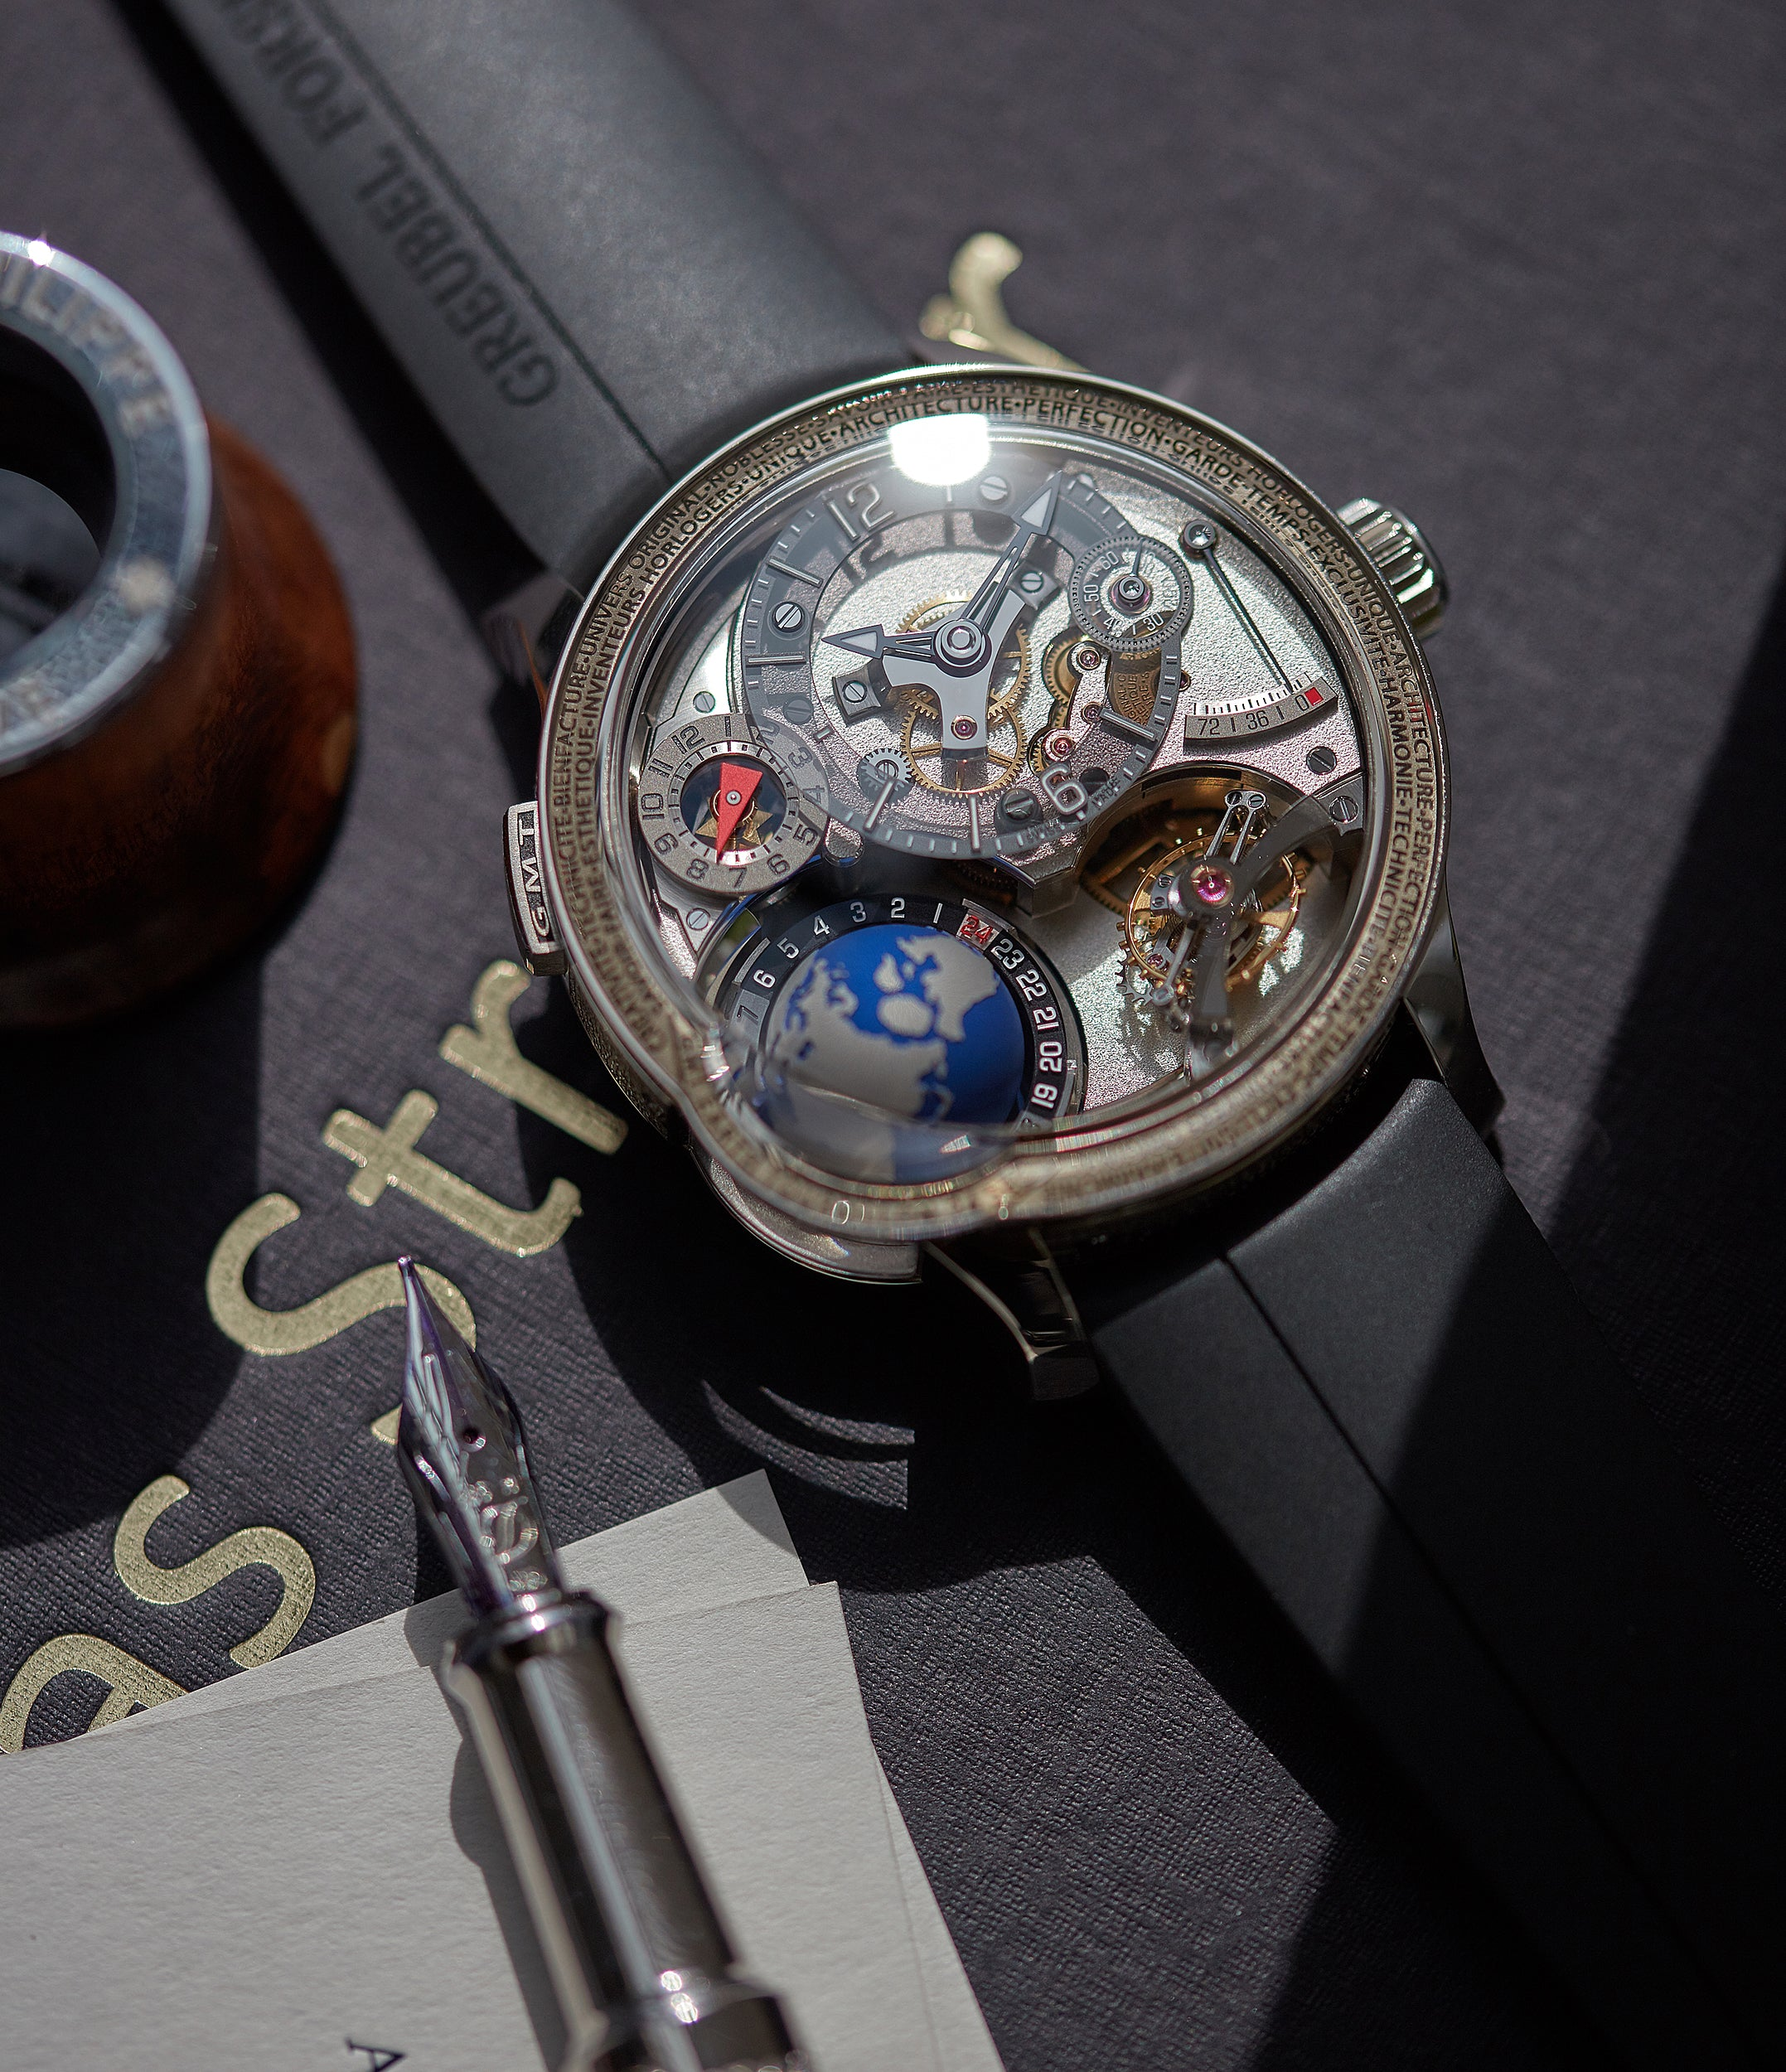 Spherical Earth globe day and night indication on rare GMT Earth Greubel Forsey